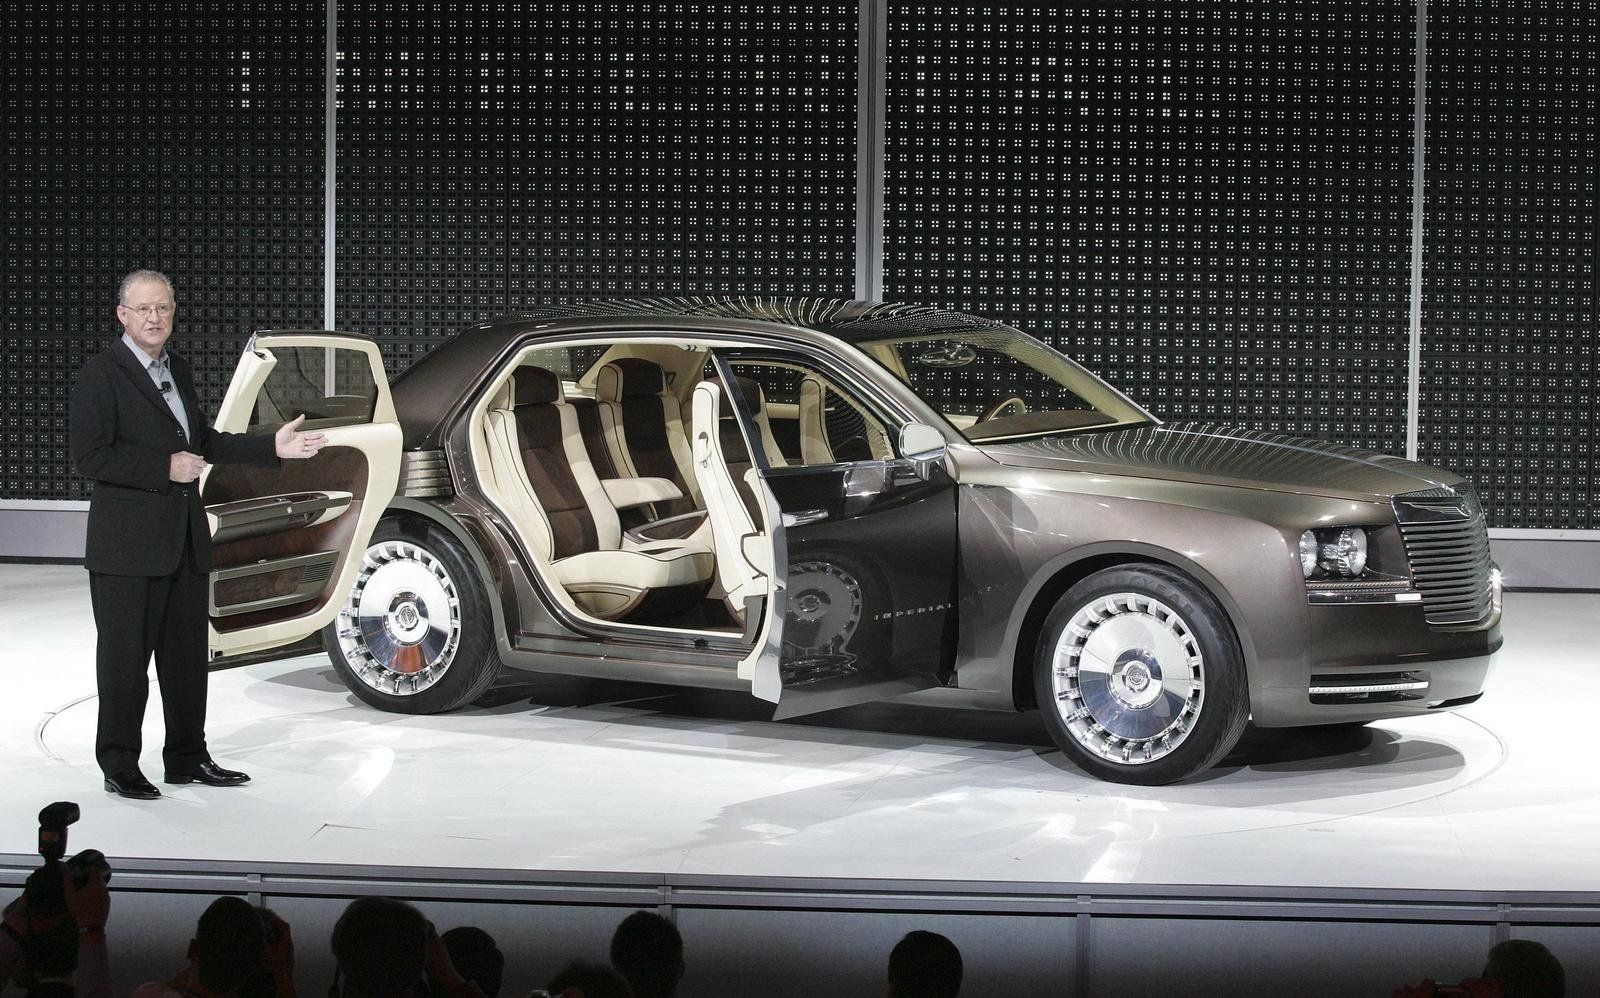 2006 Chrysler Imperial Concept Review - Top Speed